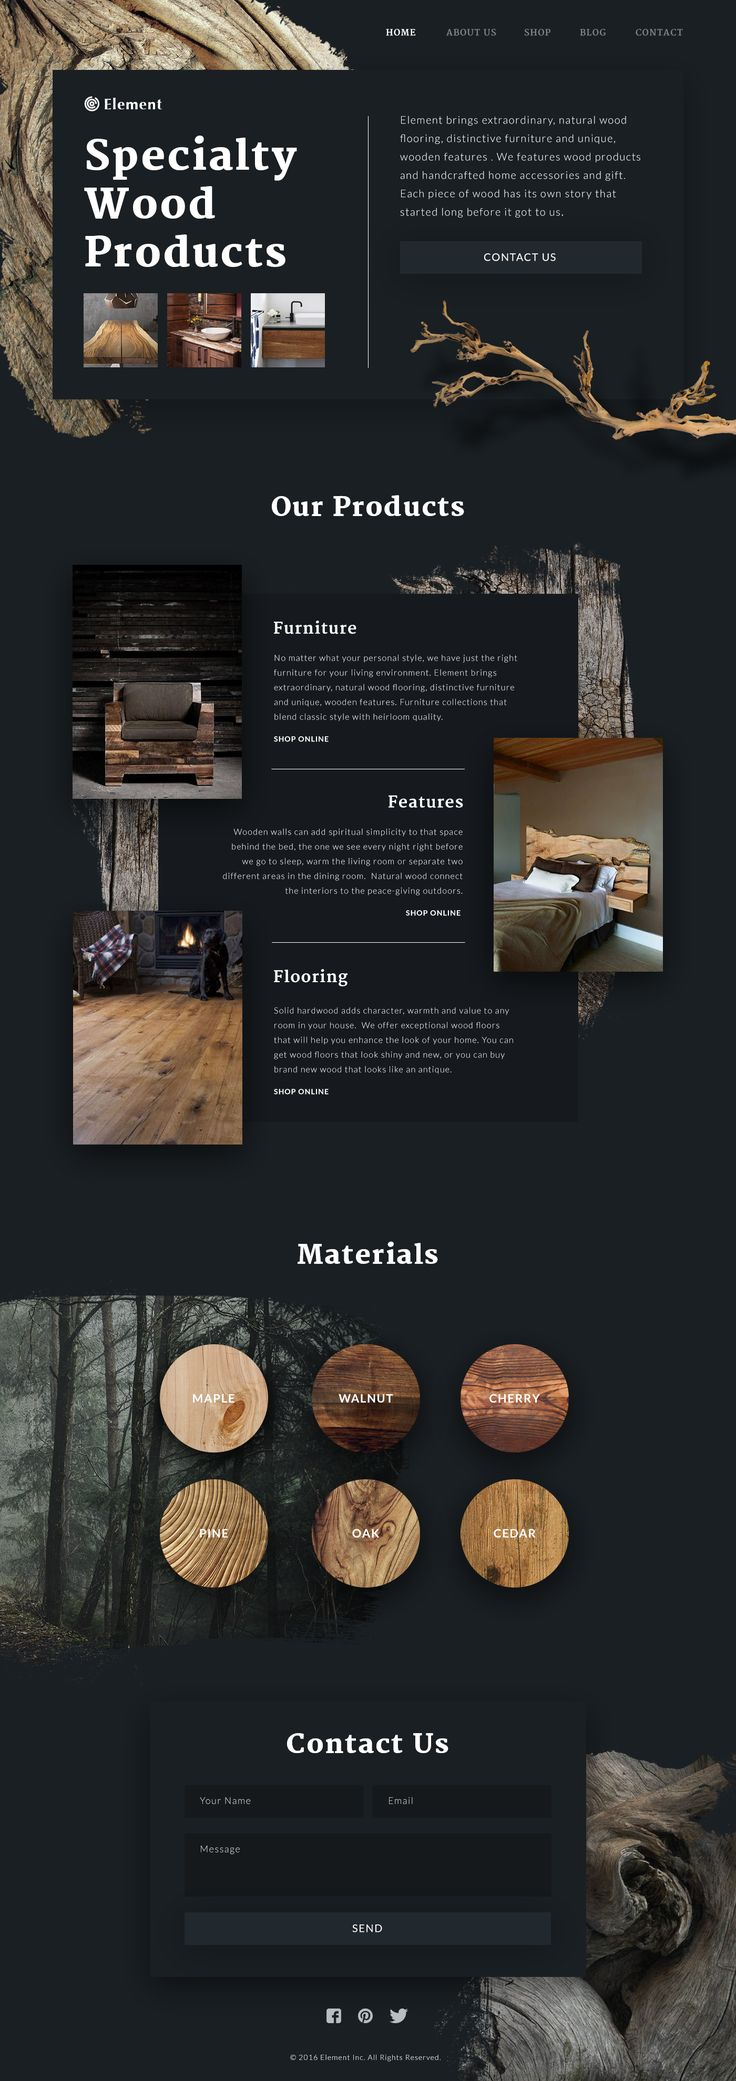 Wood products site tubik